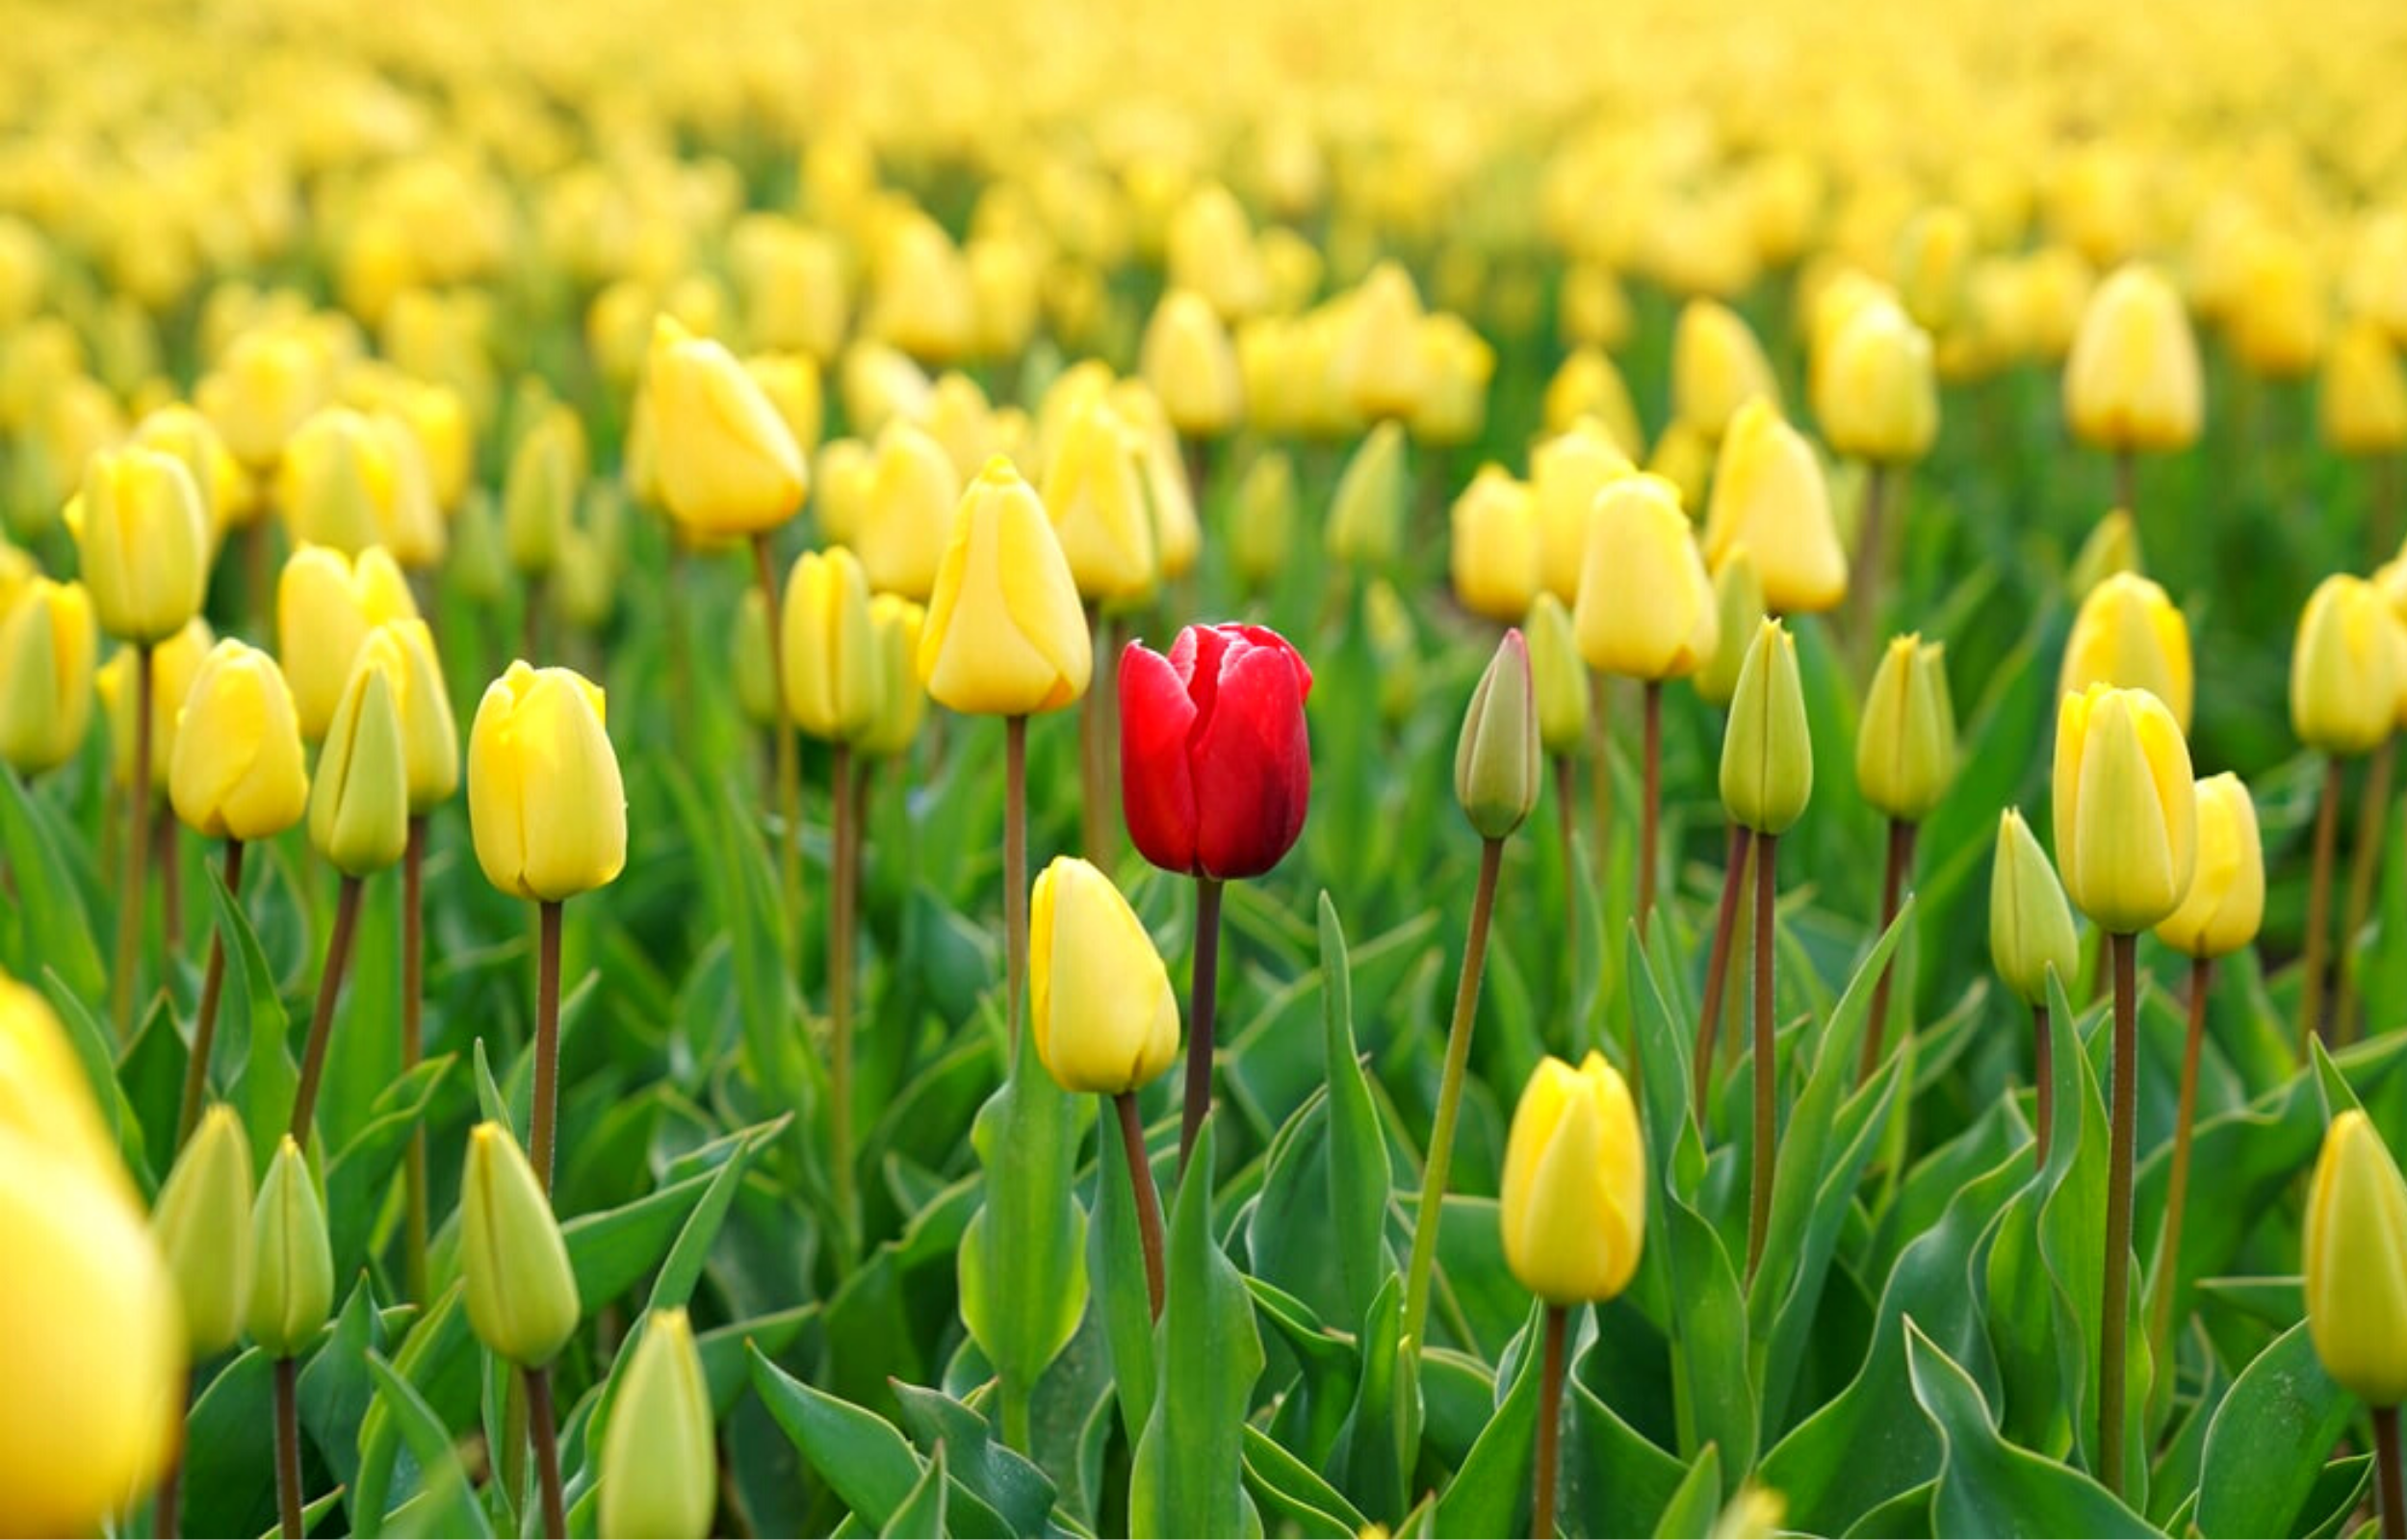 Picture of yellow flowers with one red flower in the middle